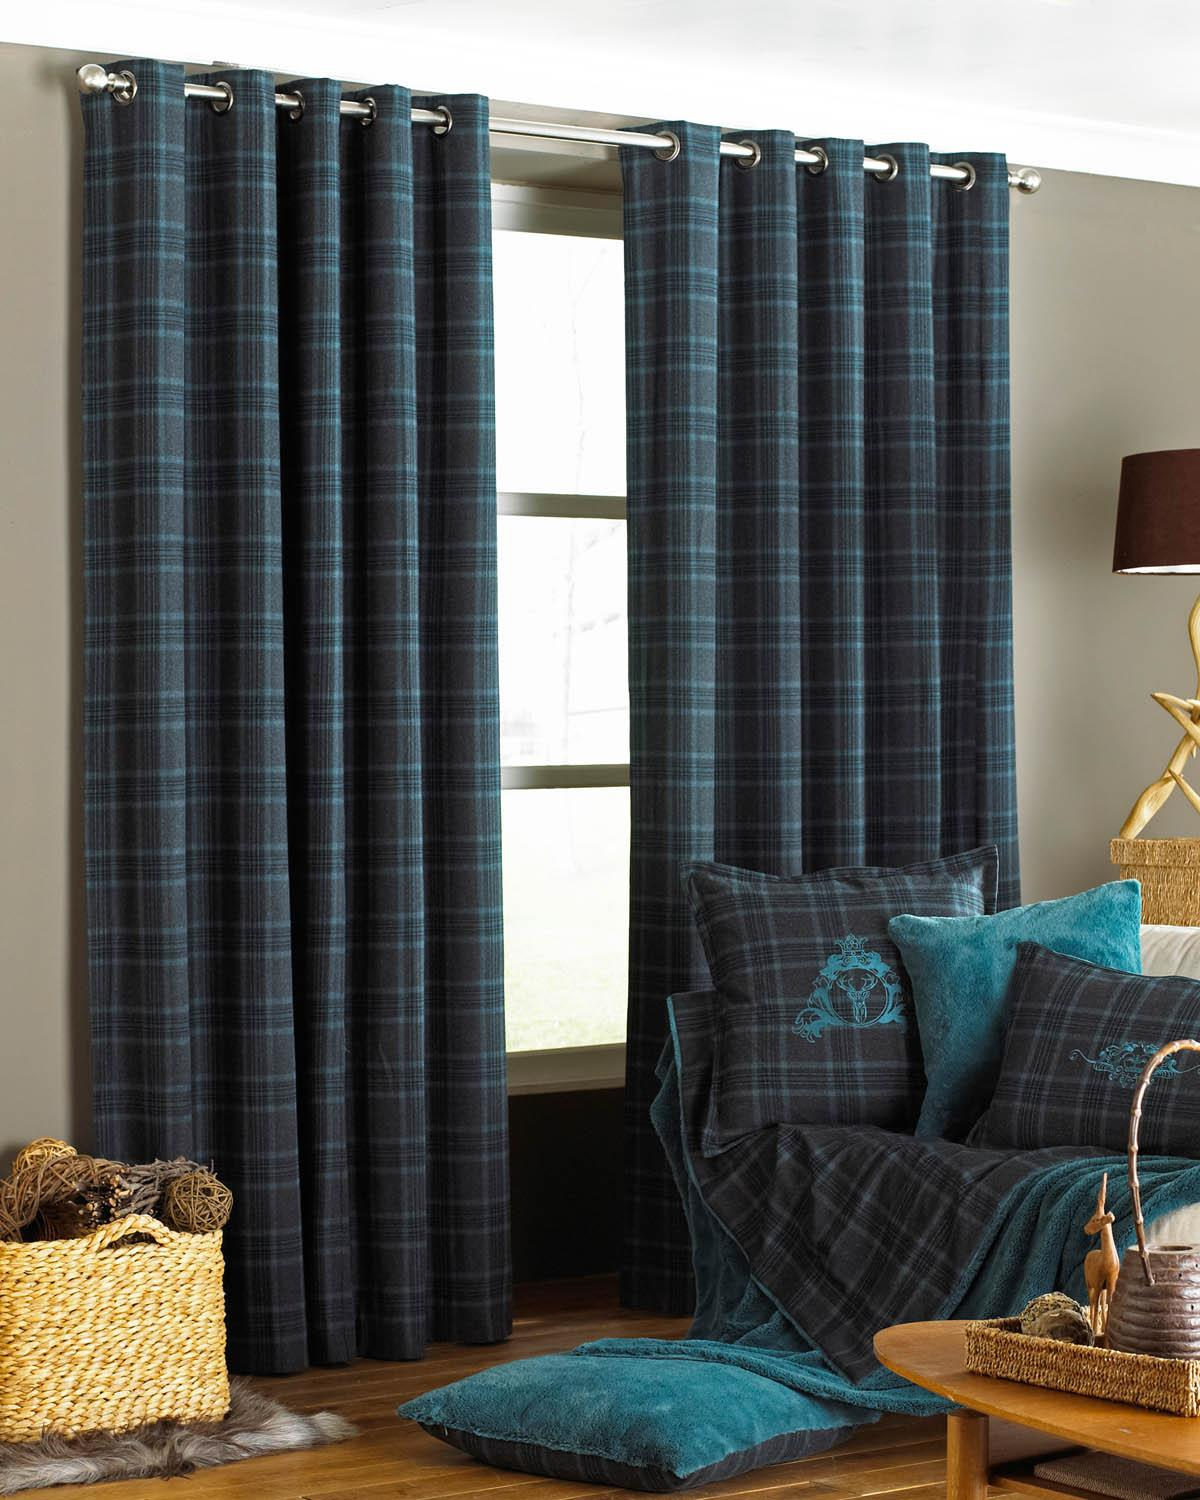 Verbier Ready Made Eyelet Curtains Teal Free UK Delivery Terrys Fabrics